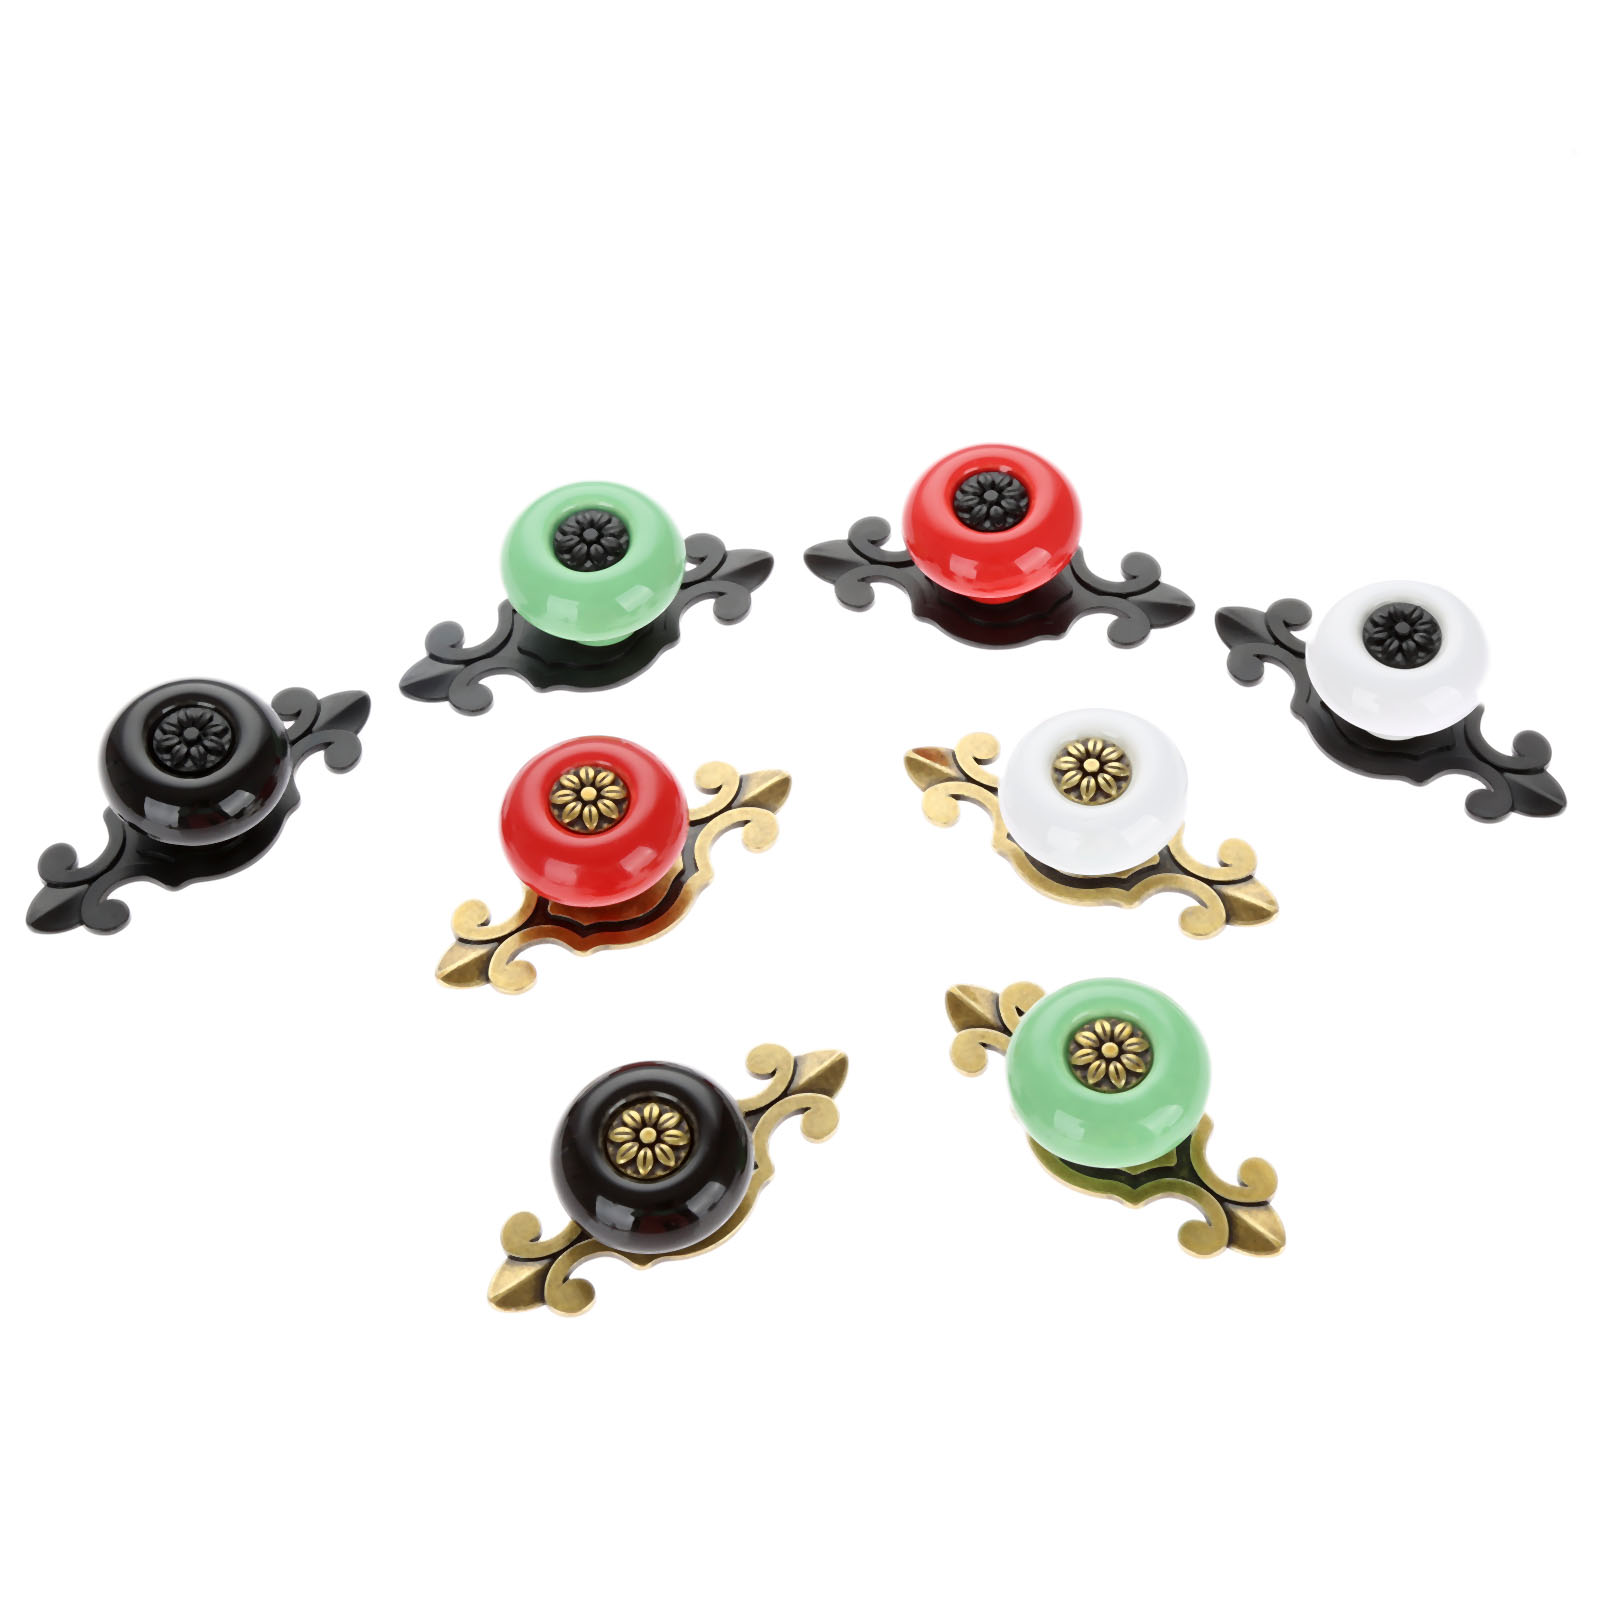 Vintage Furniture Handles Ceramic Cabinet Knobs and Door Cupboard Drawer Kitchen Pull Fittings